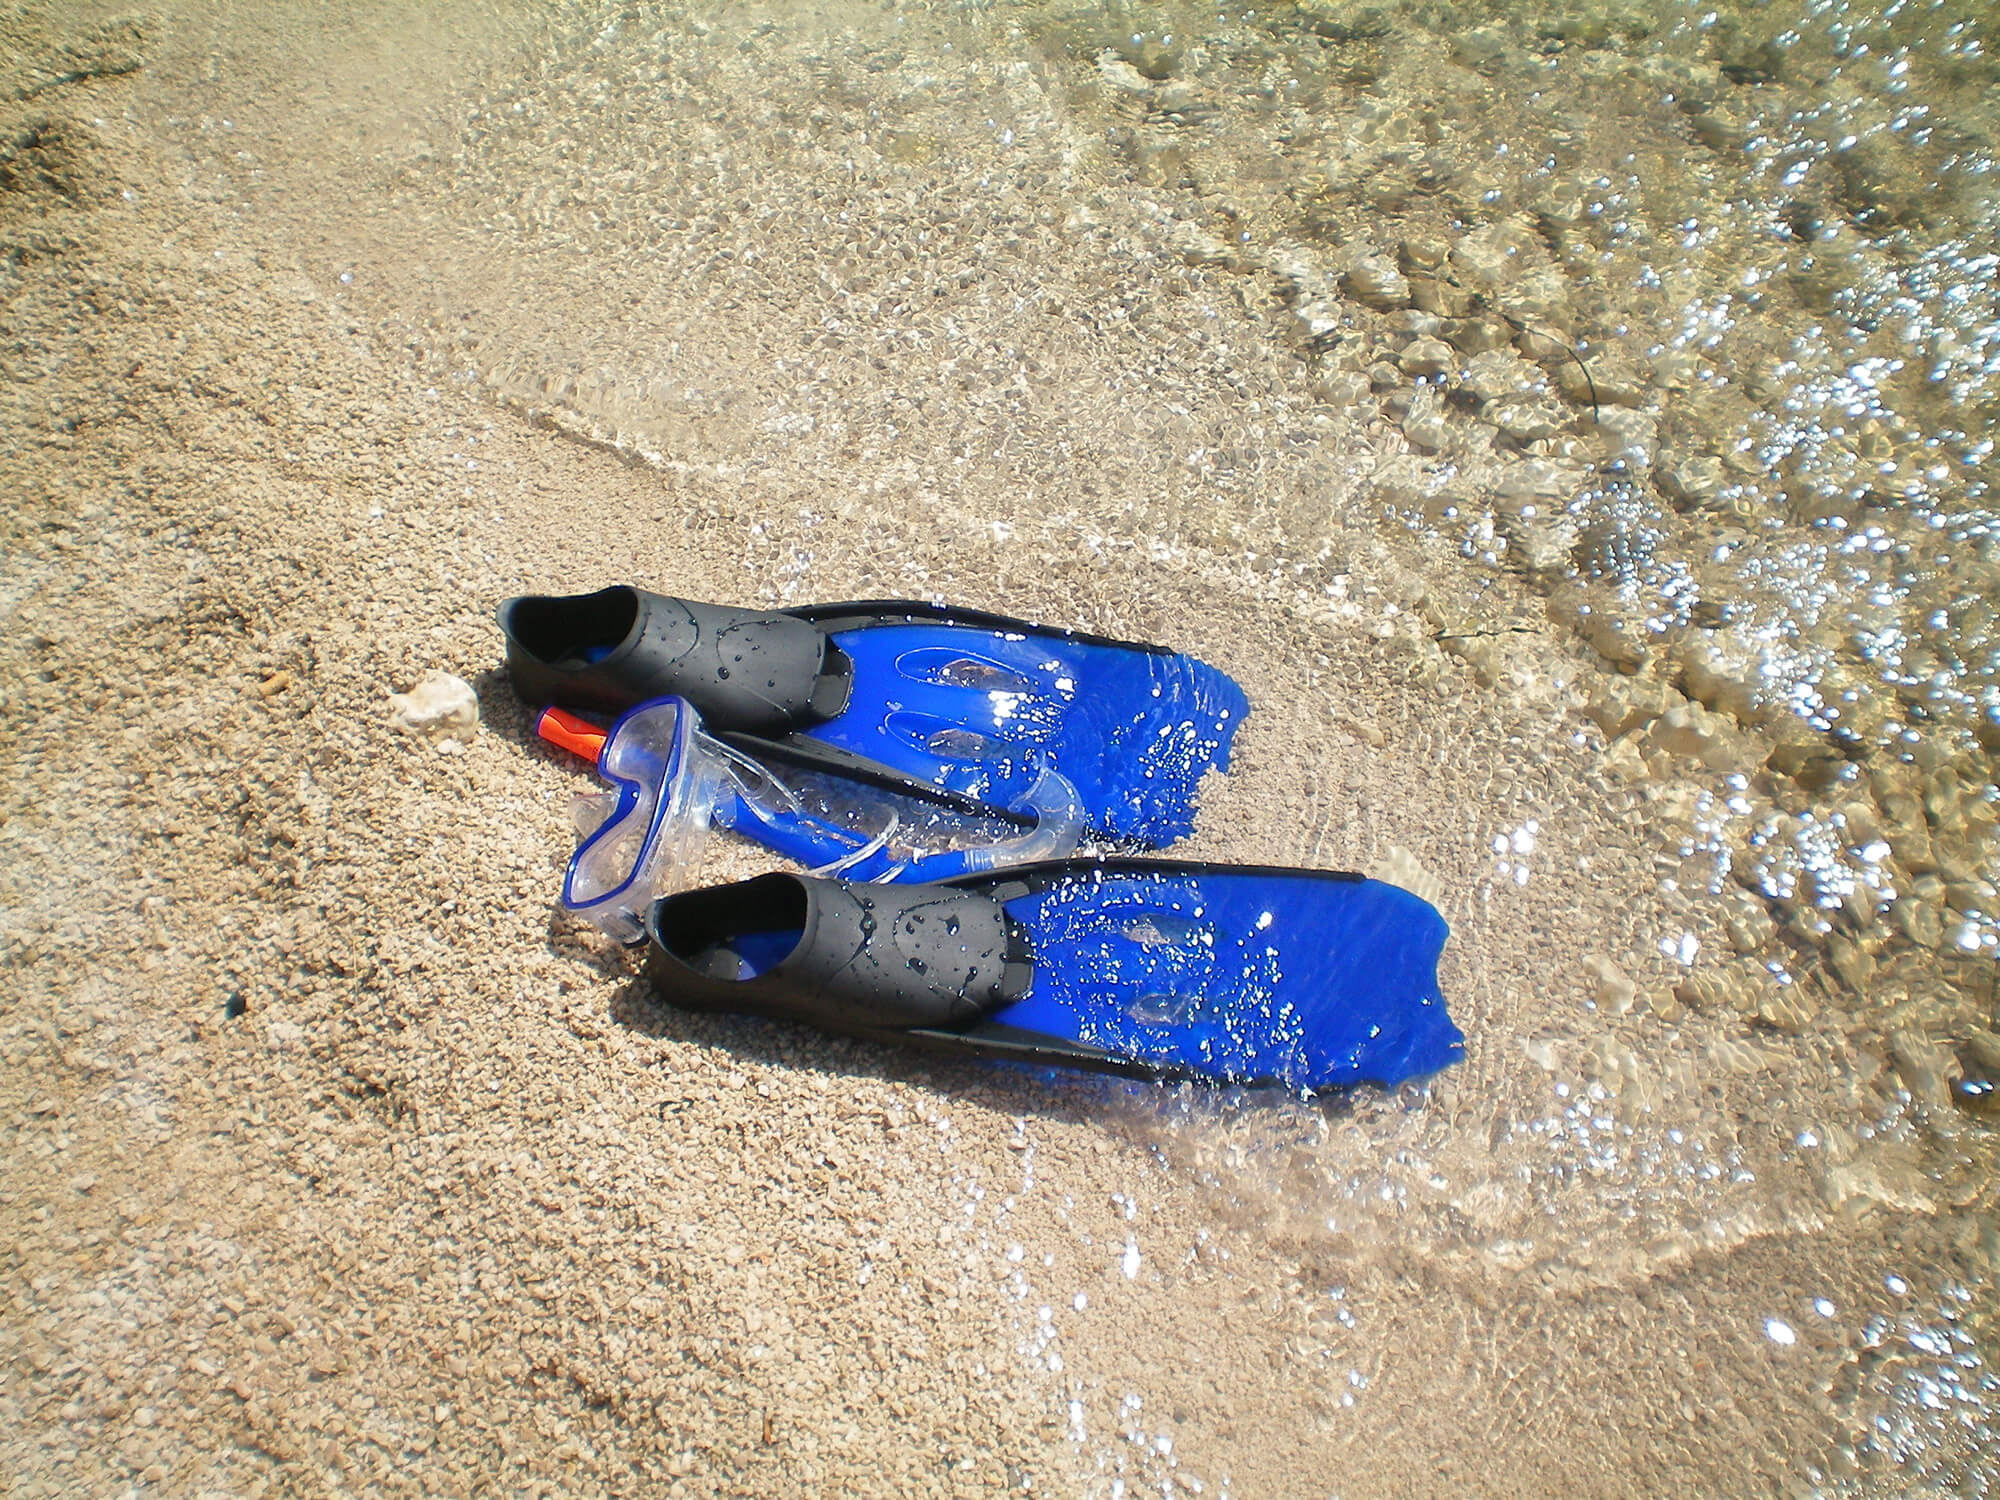 Scuba Diving Mask and Fins at the Waters Edge